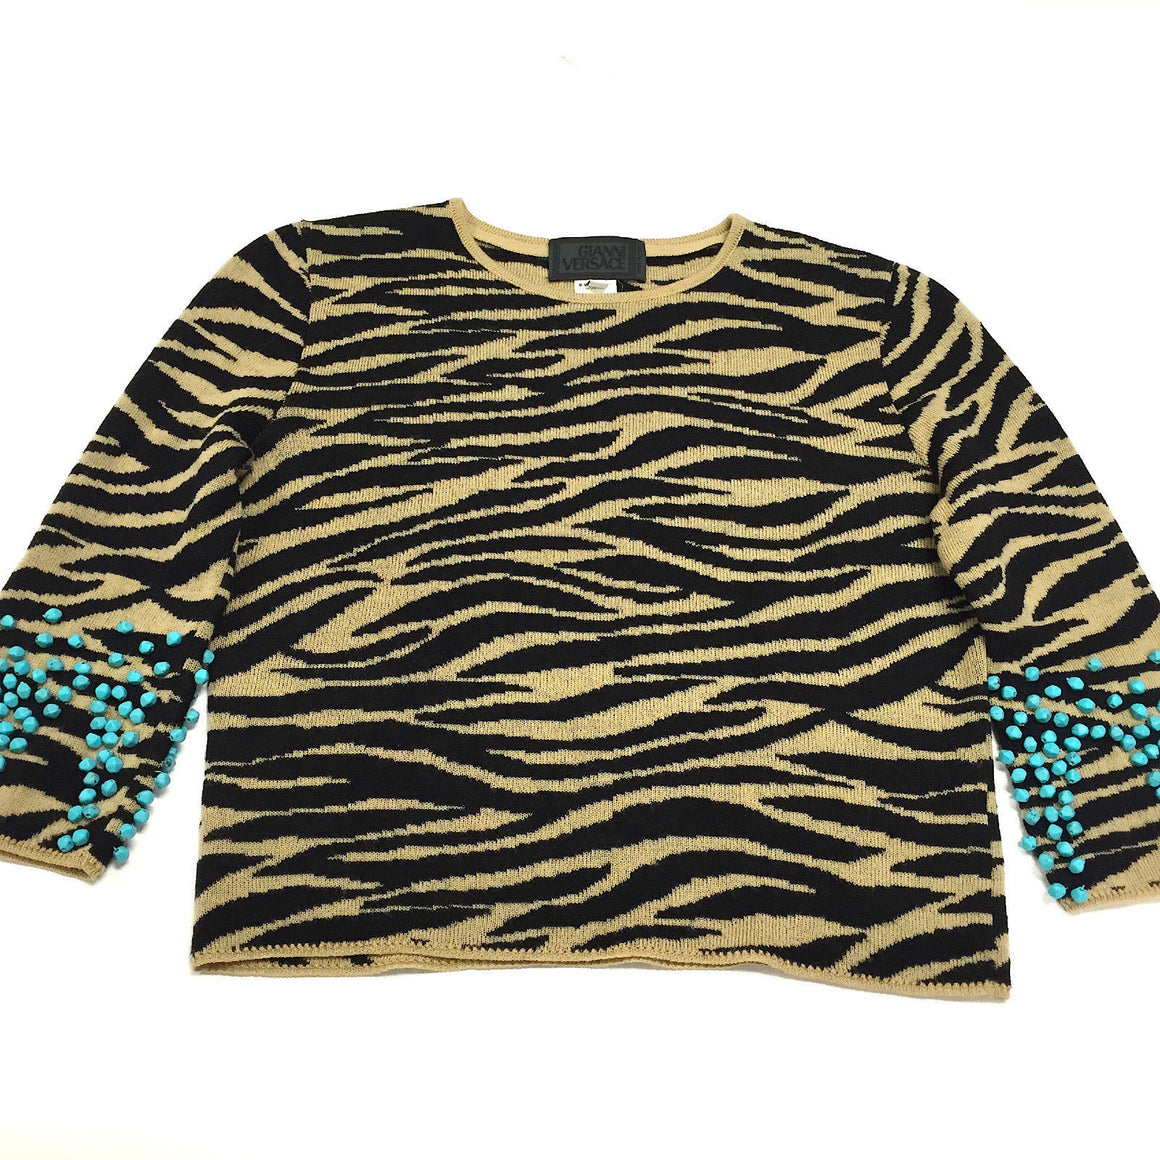 bisbiz.com GIANNI VERSACE  Beige/Black Zebra-Print Wool Sweater with Turquoise Beaded Sleeves  Size: IT40/6 - Bis Luxury Resale